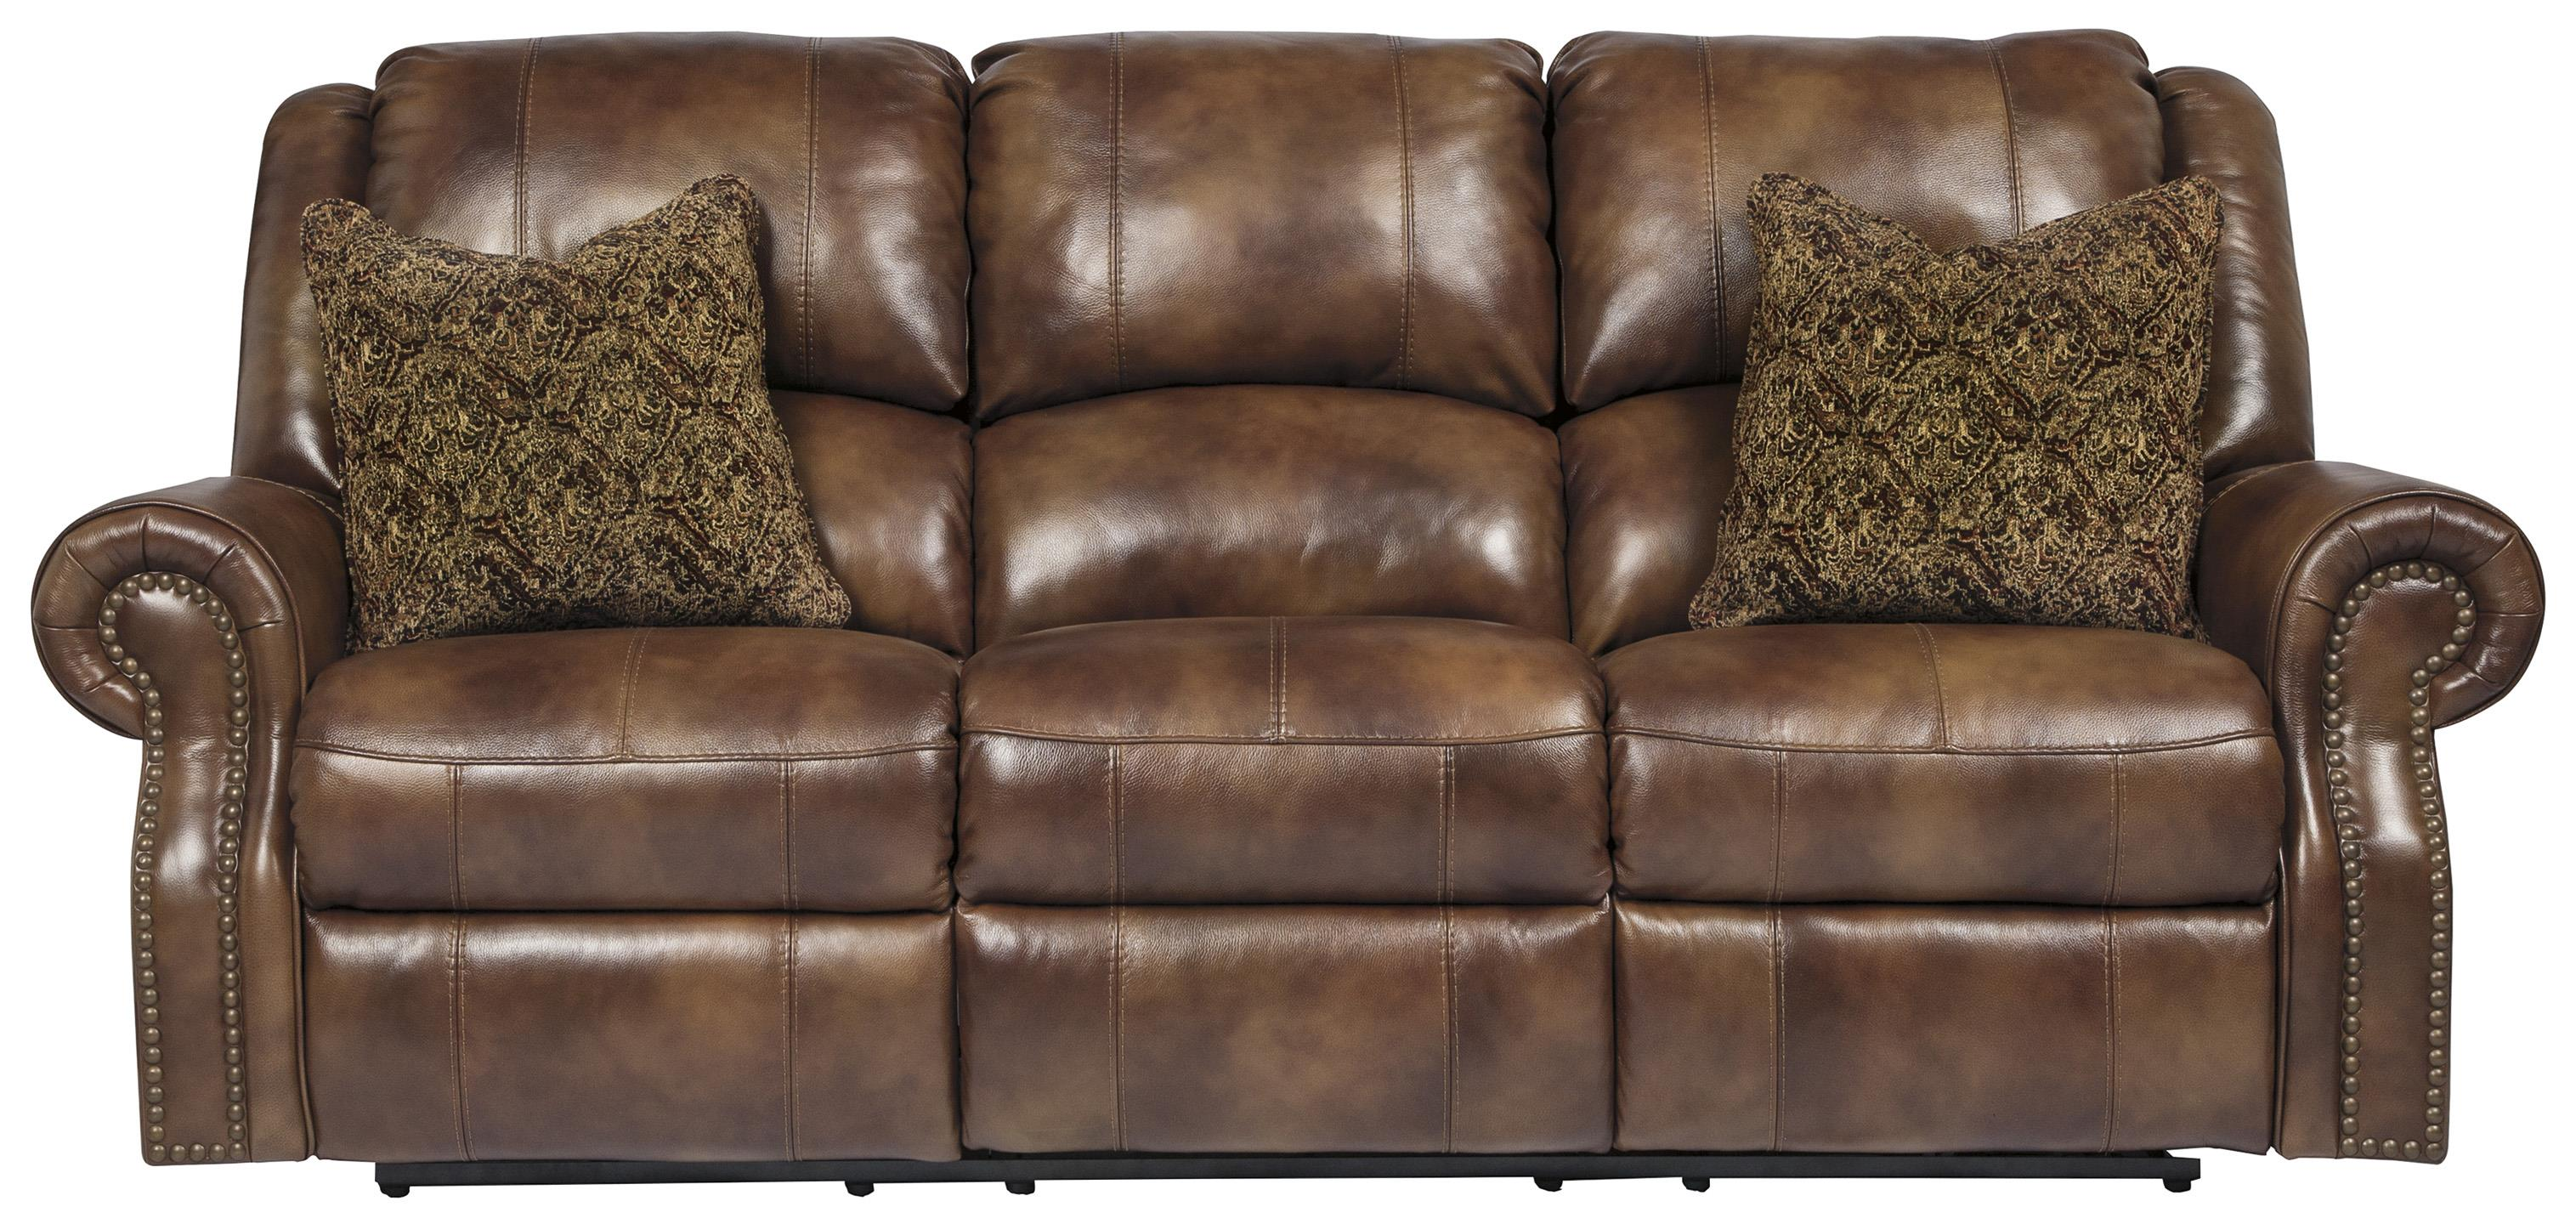 Signature Design By Ashley Walworth Leather Match Reclining Sofa With Nailhead Trim Olinde 39 S